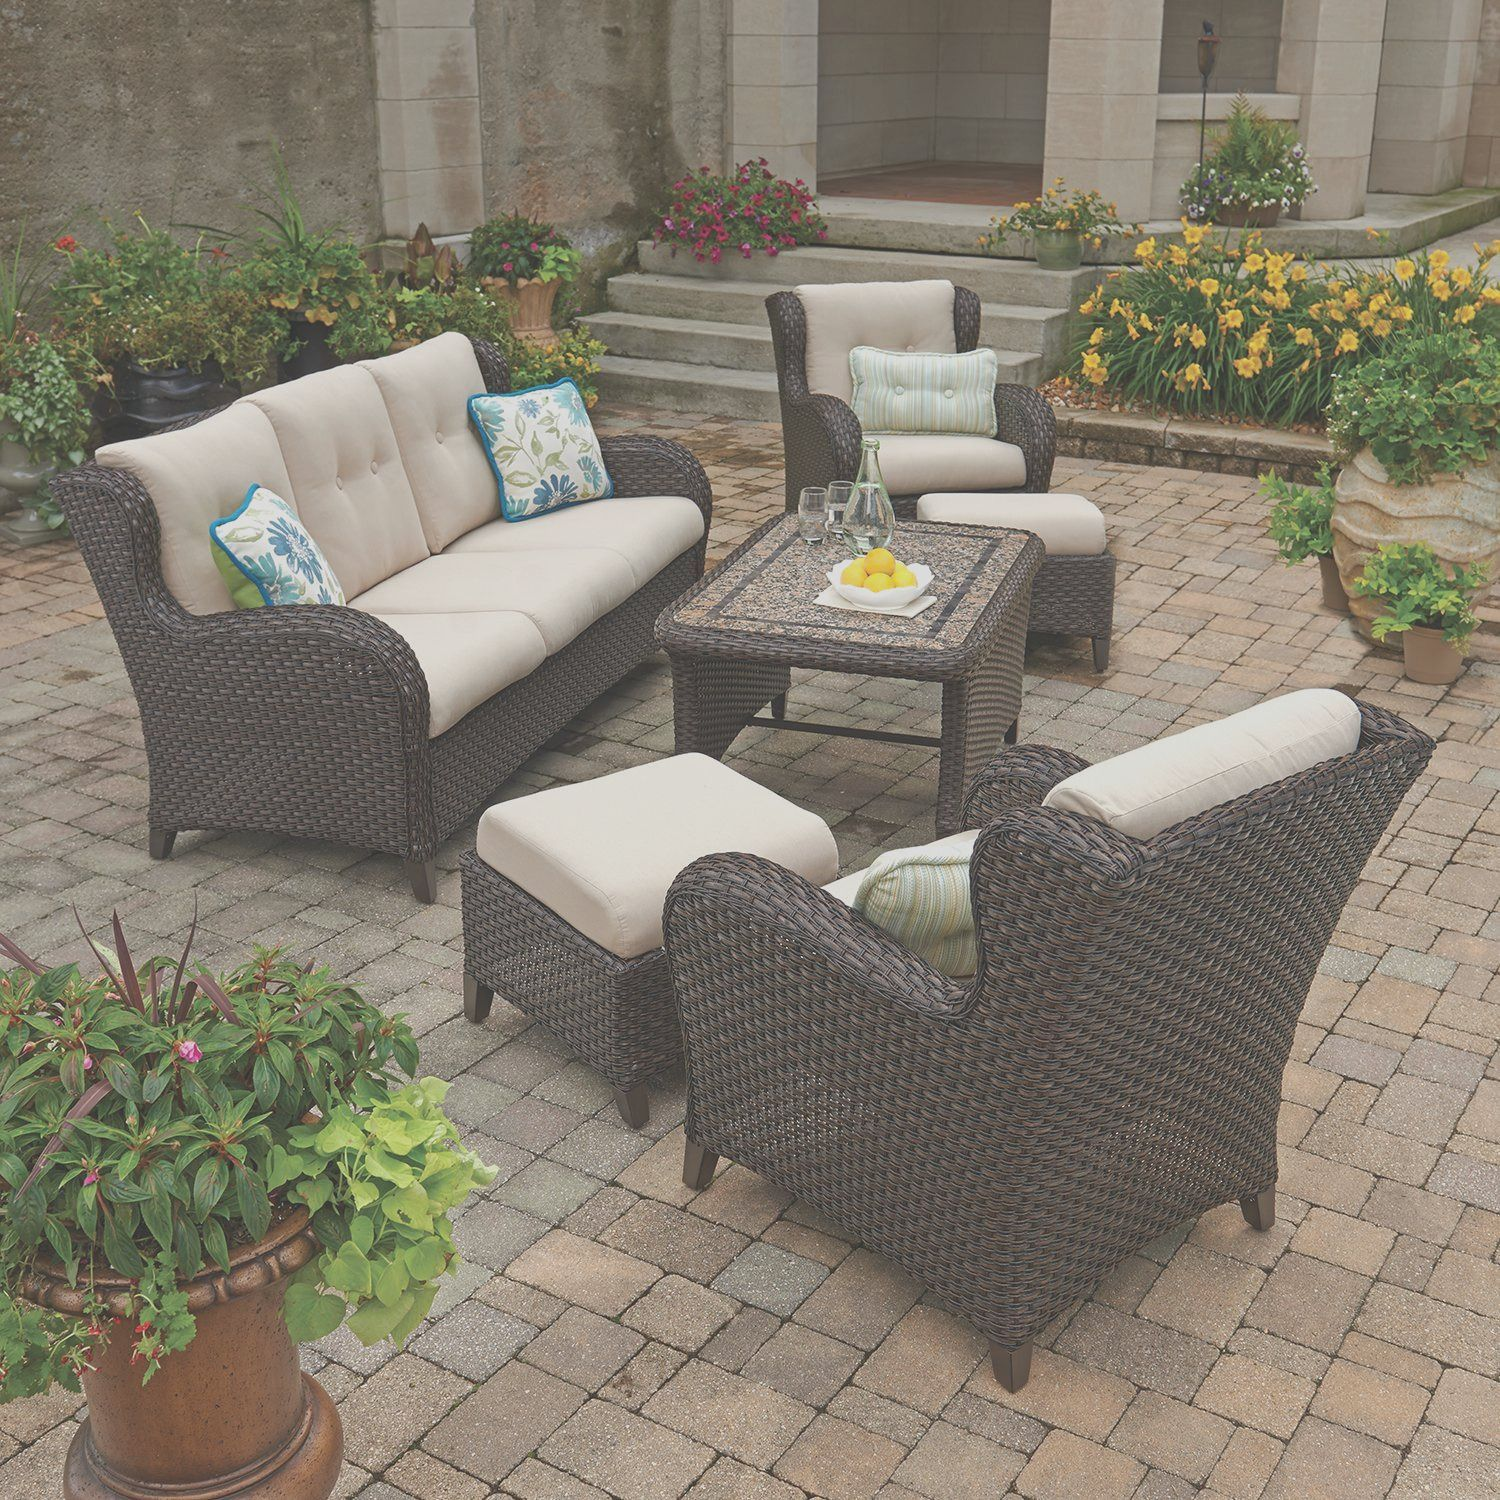 46 Best Patio Furniture Sets For A Magical Outdoor Space In 2021 Ohana Patio Furniture Inexpensive Patio Furniture Patio Furniture Sets